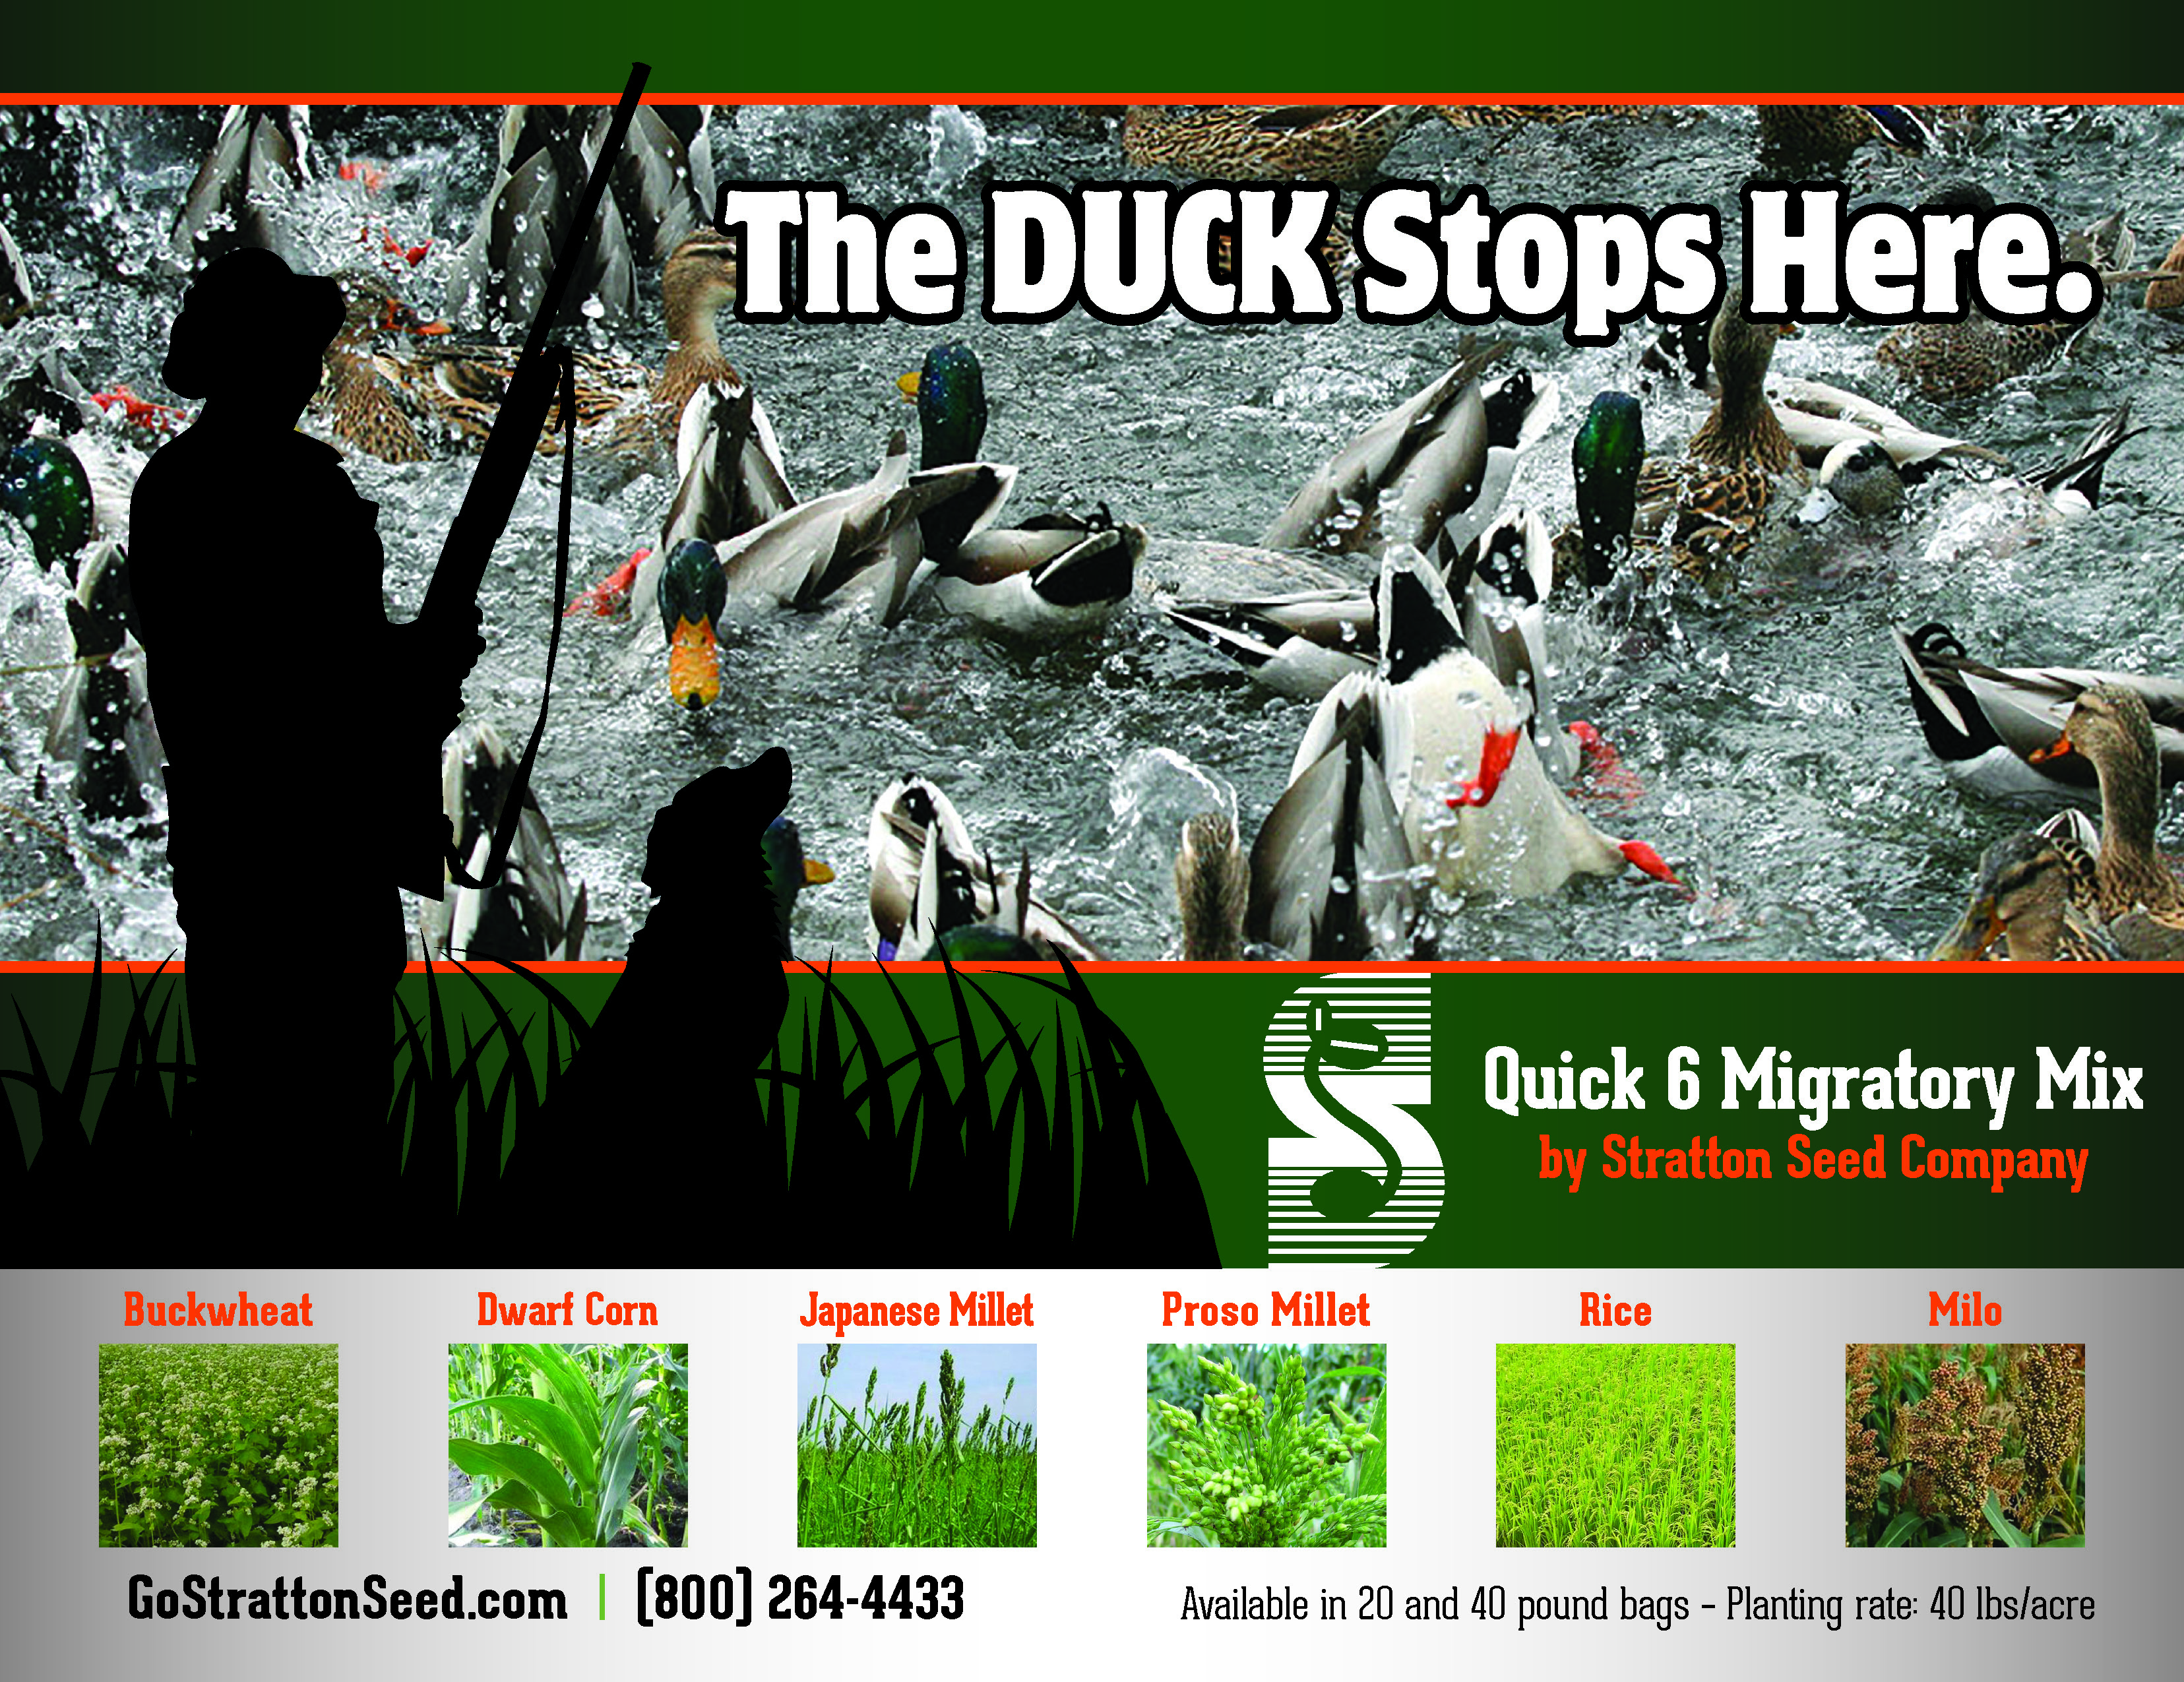 New Product: Quick 6 Migratory Mix